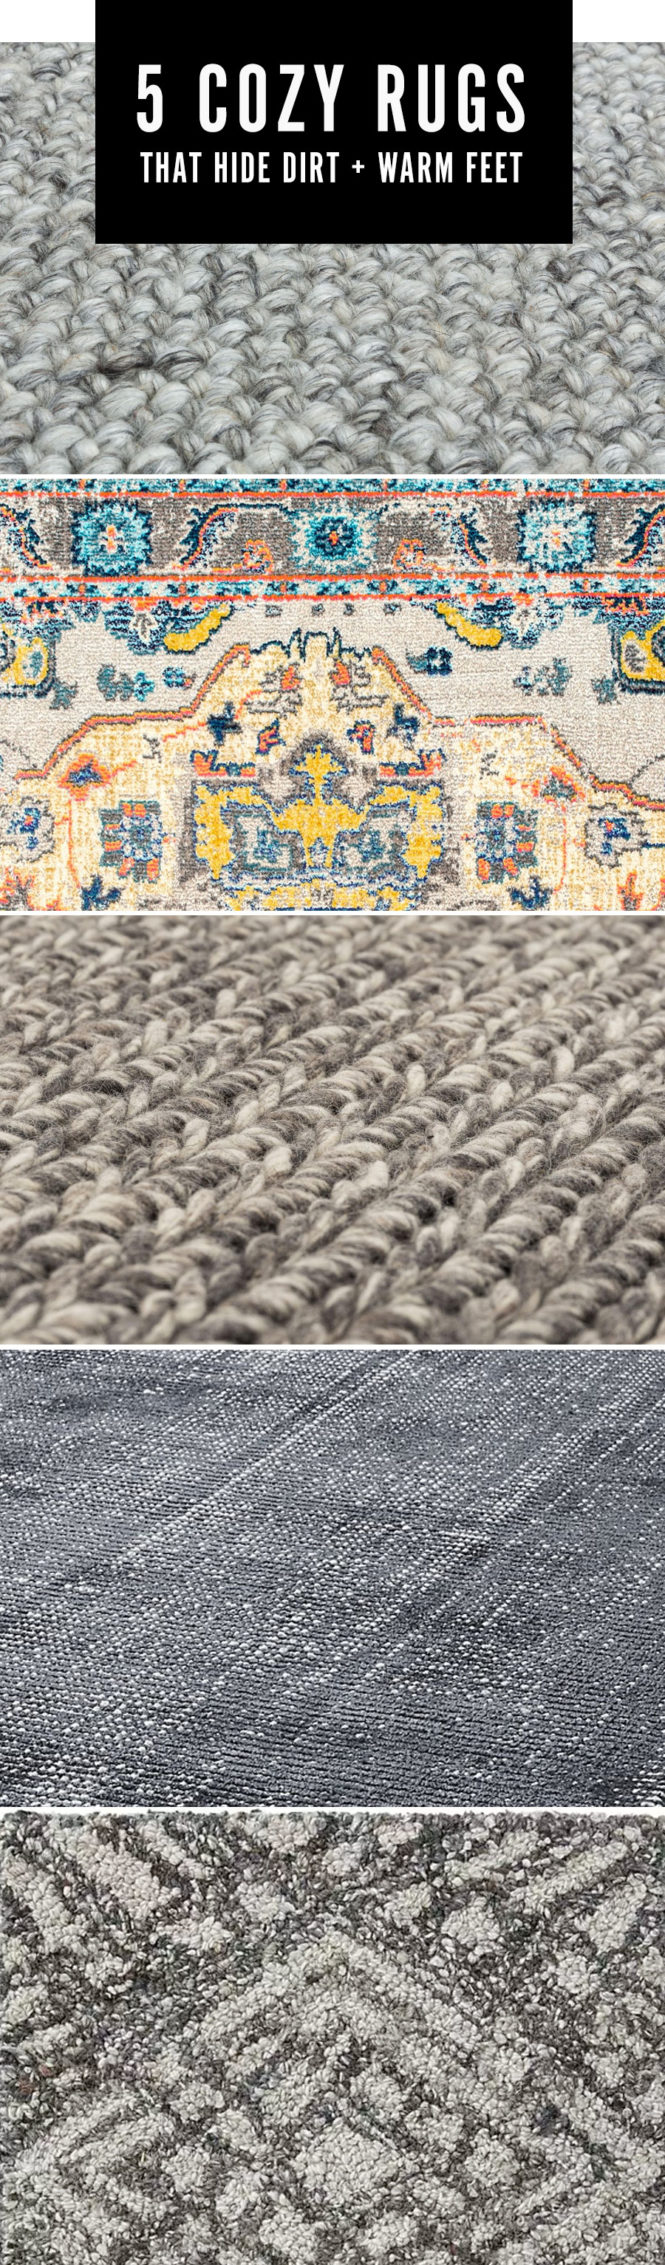 5 cozy rugs that hide dirt